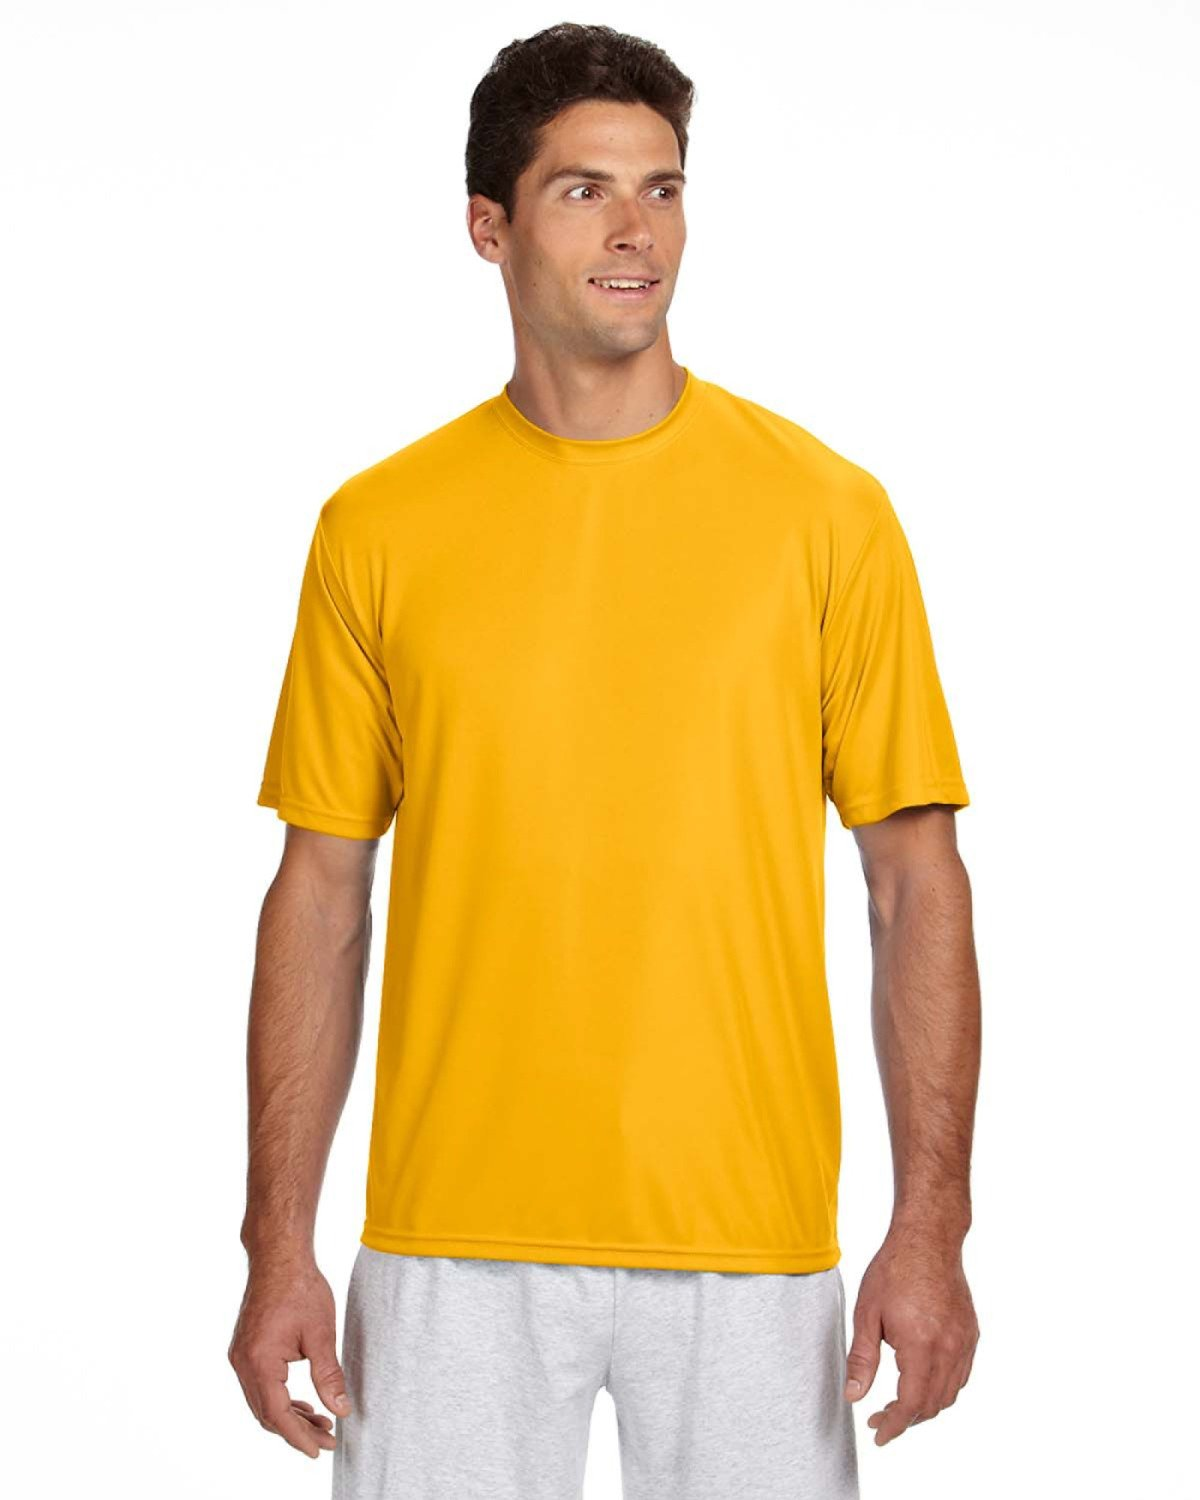 A4 Men's Cooling Performance T-Shirt GOLD